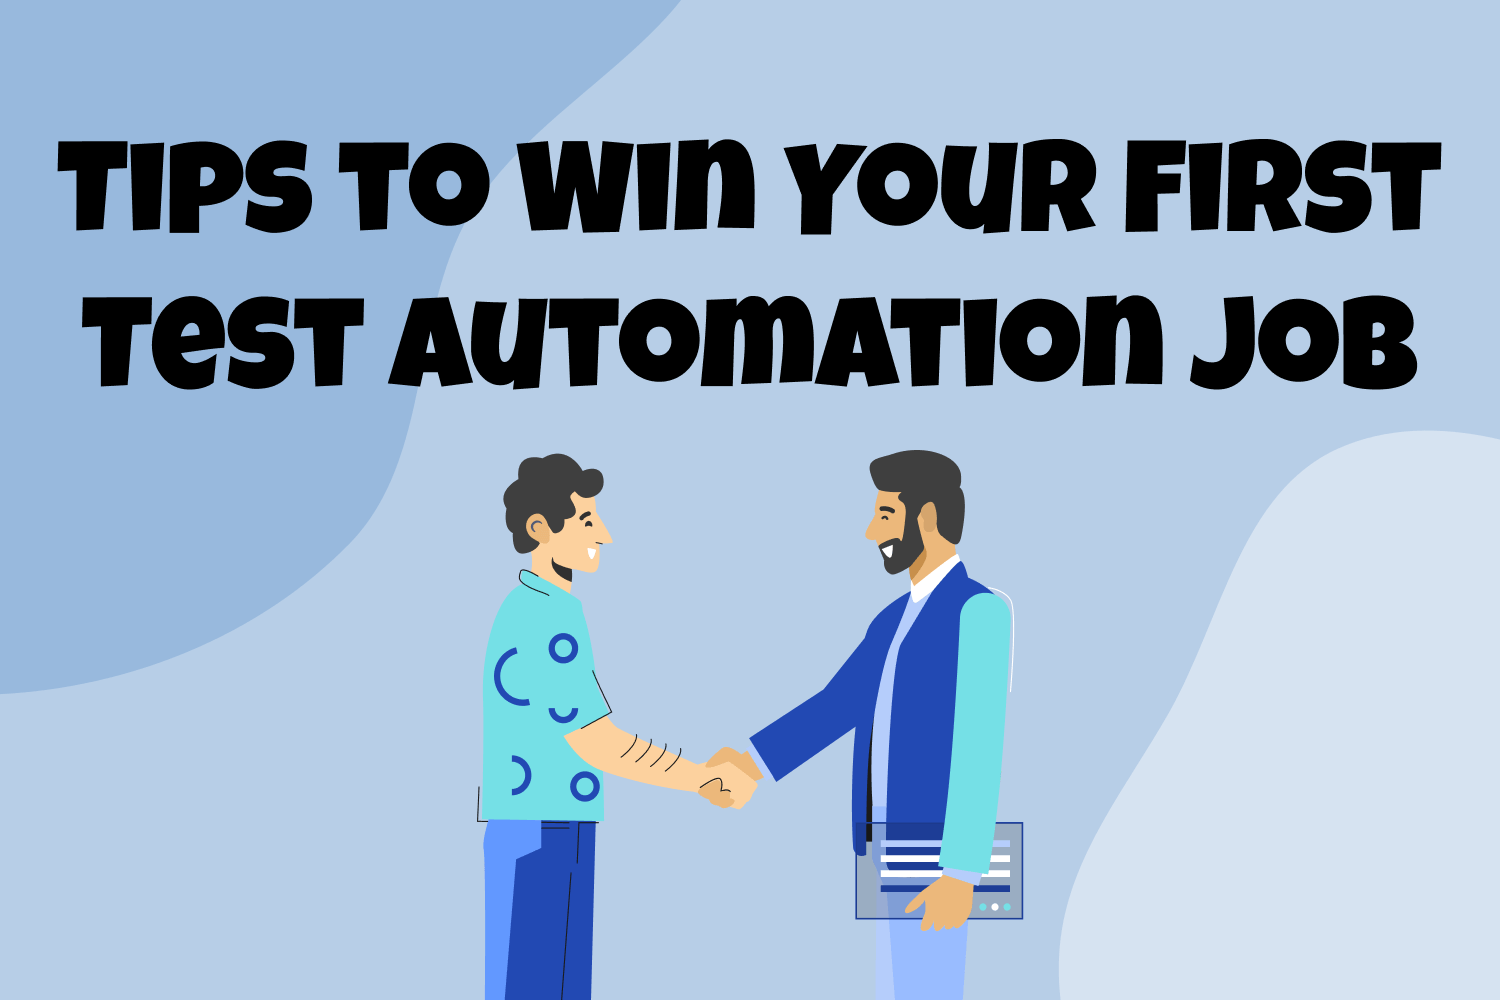 Tips to Win Your First Test Automation Job